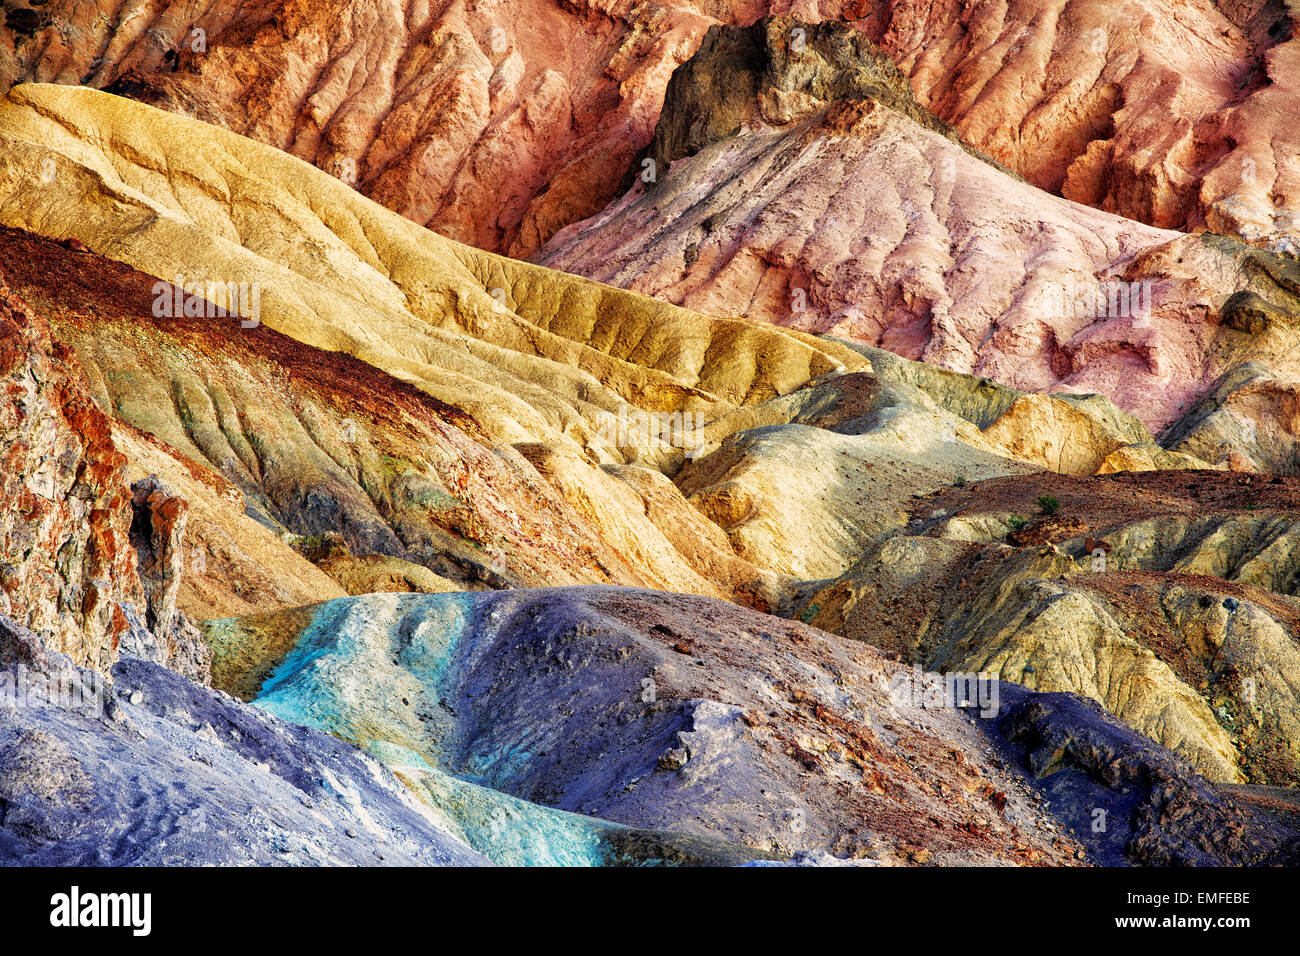 The oxidation of many different metals created the Artist Palette in California's Death Valley National Park. - Stock Image